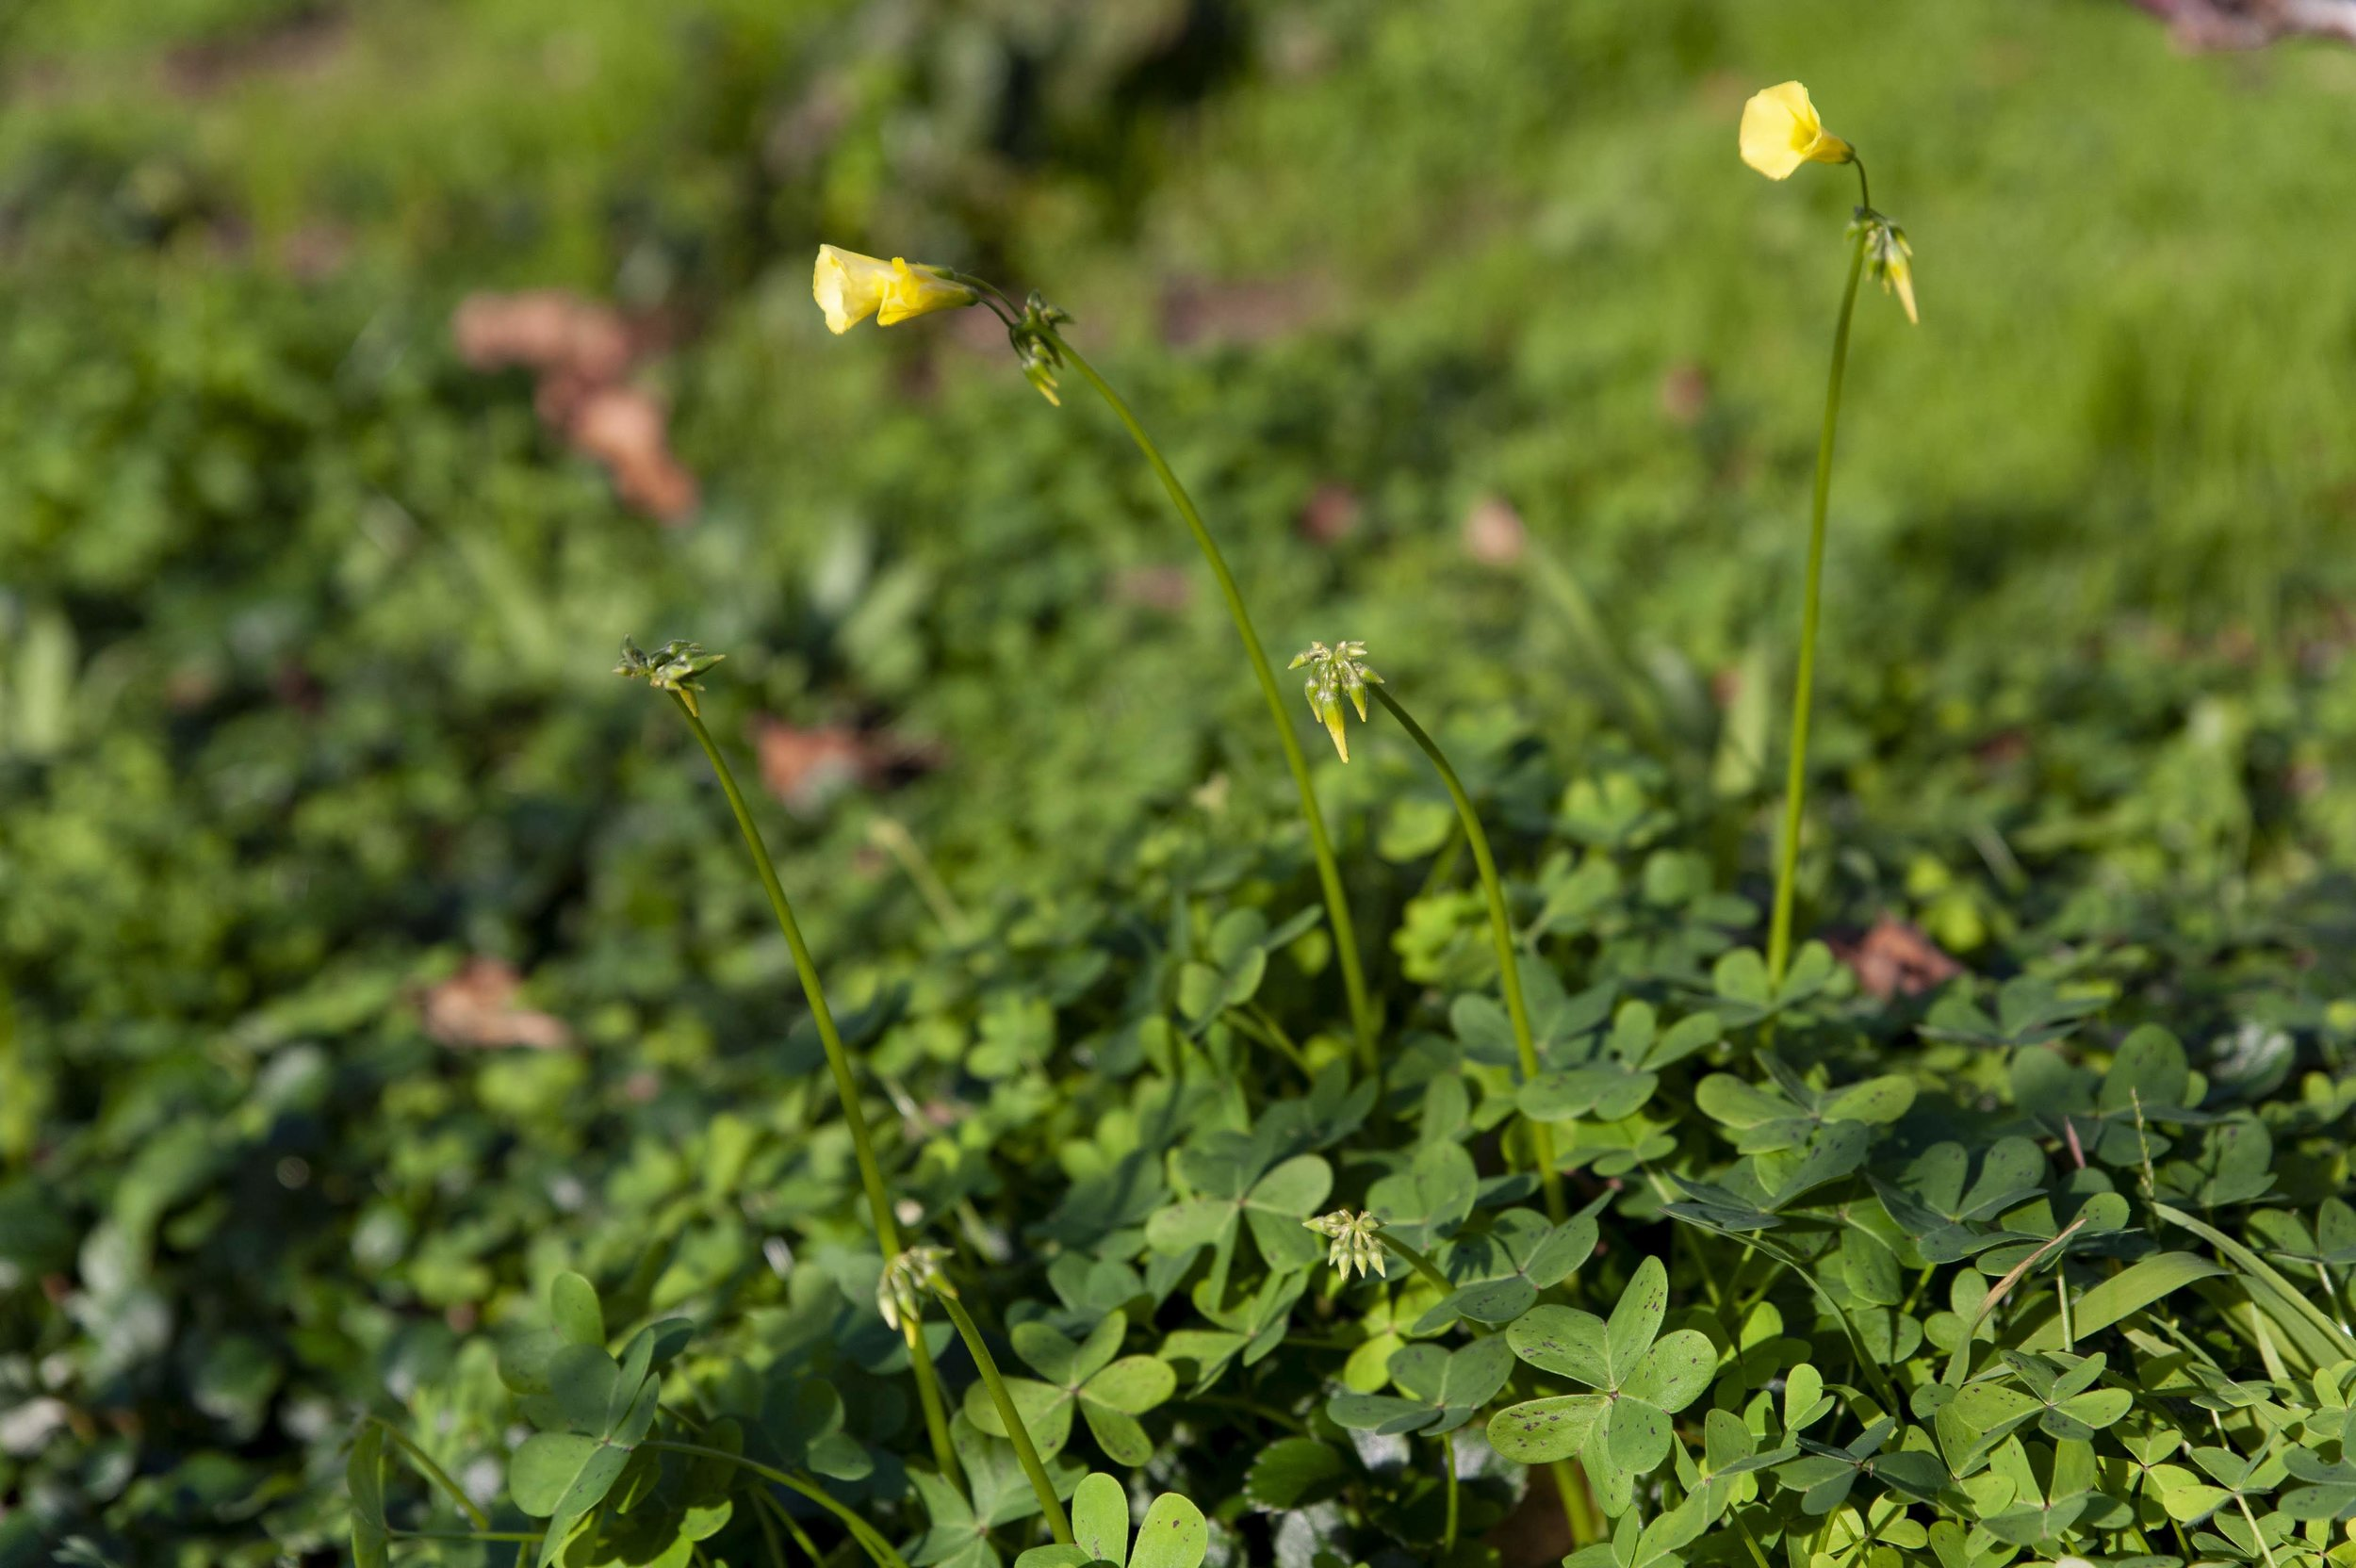 Oxalis pes-caprae  taking over the orchard.